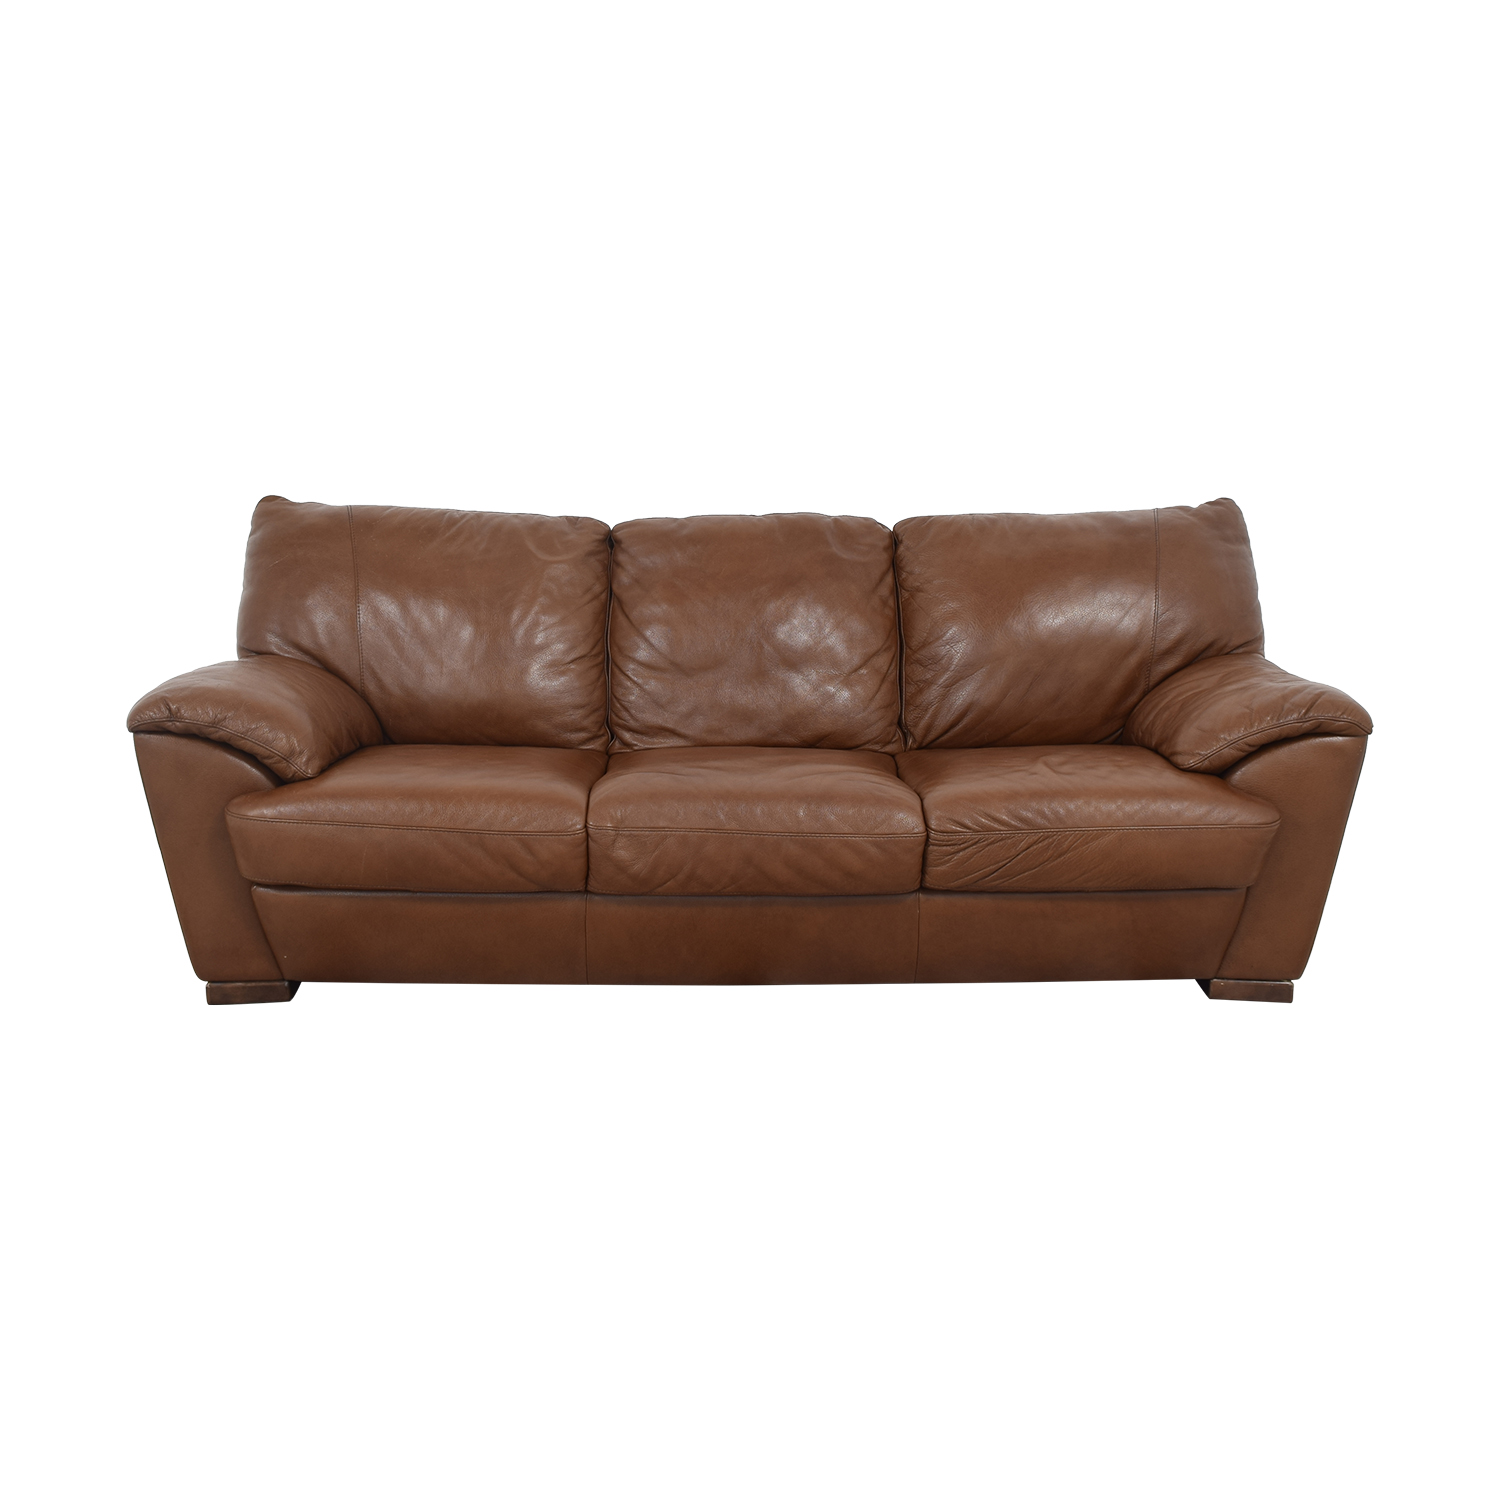 Natuzzi Natuzzi Editions Three Seat Sofa